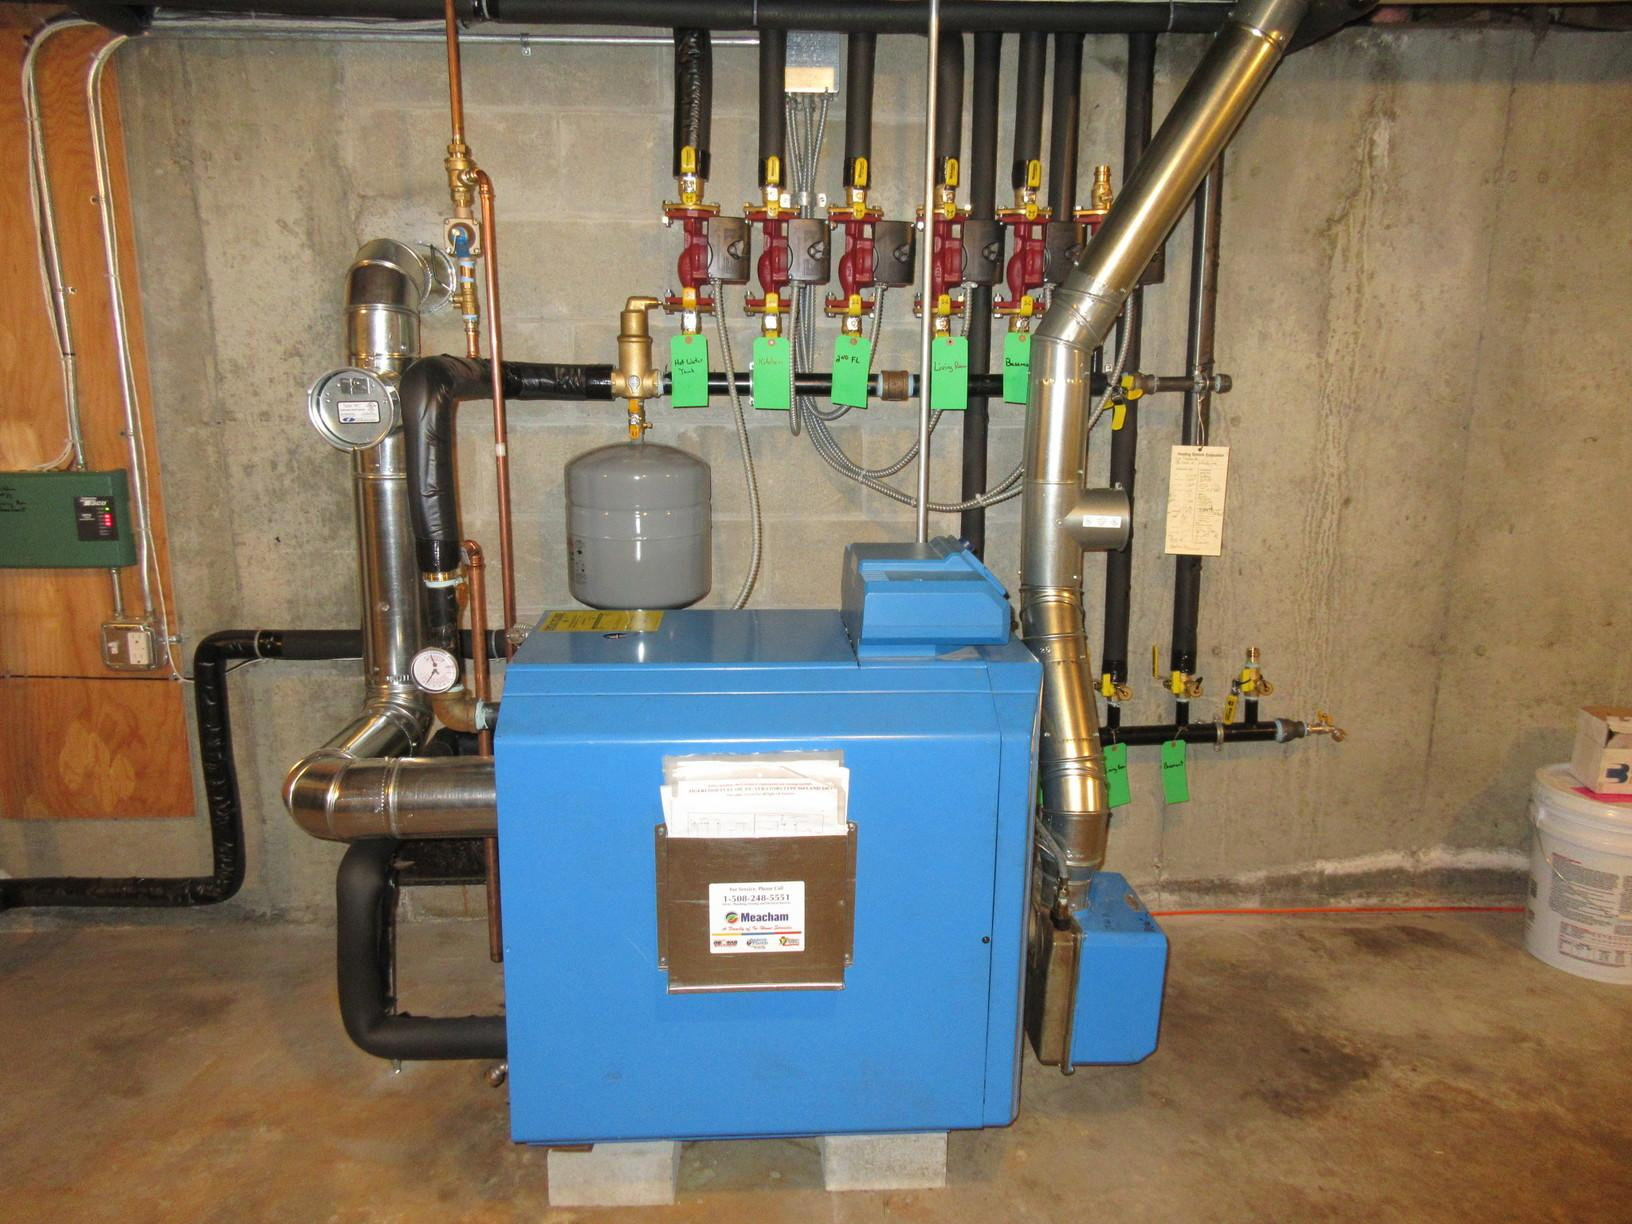 Buderus Oil Boiler w/Logimatic Controls , Leicester Ma - After Photo